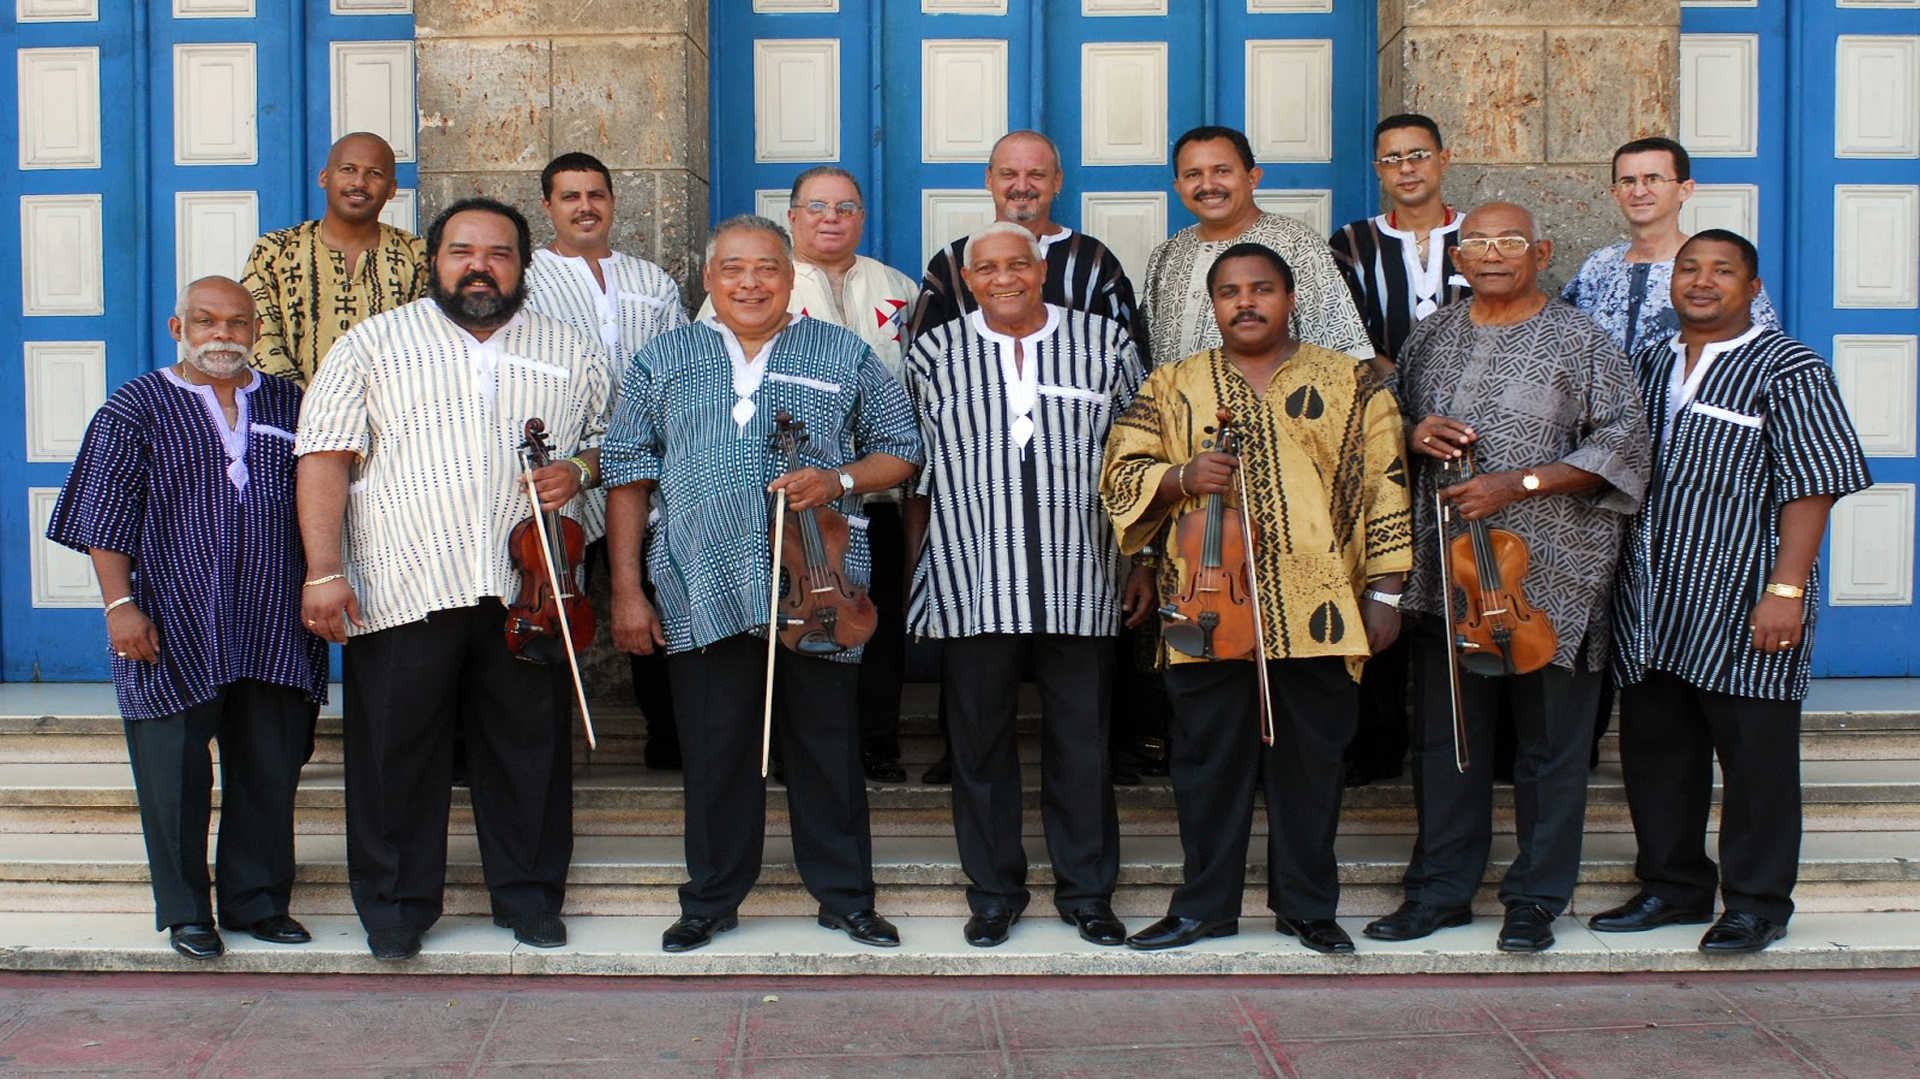 ORQUESTA ARAGON – Rare NYC Appearance by the Legendary Cuban Charanga Band – Live on April 13 at PACE Presents at The Schimmel Center